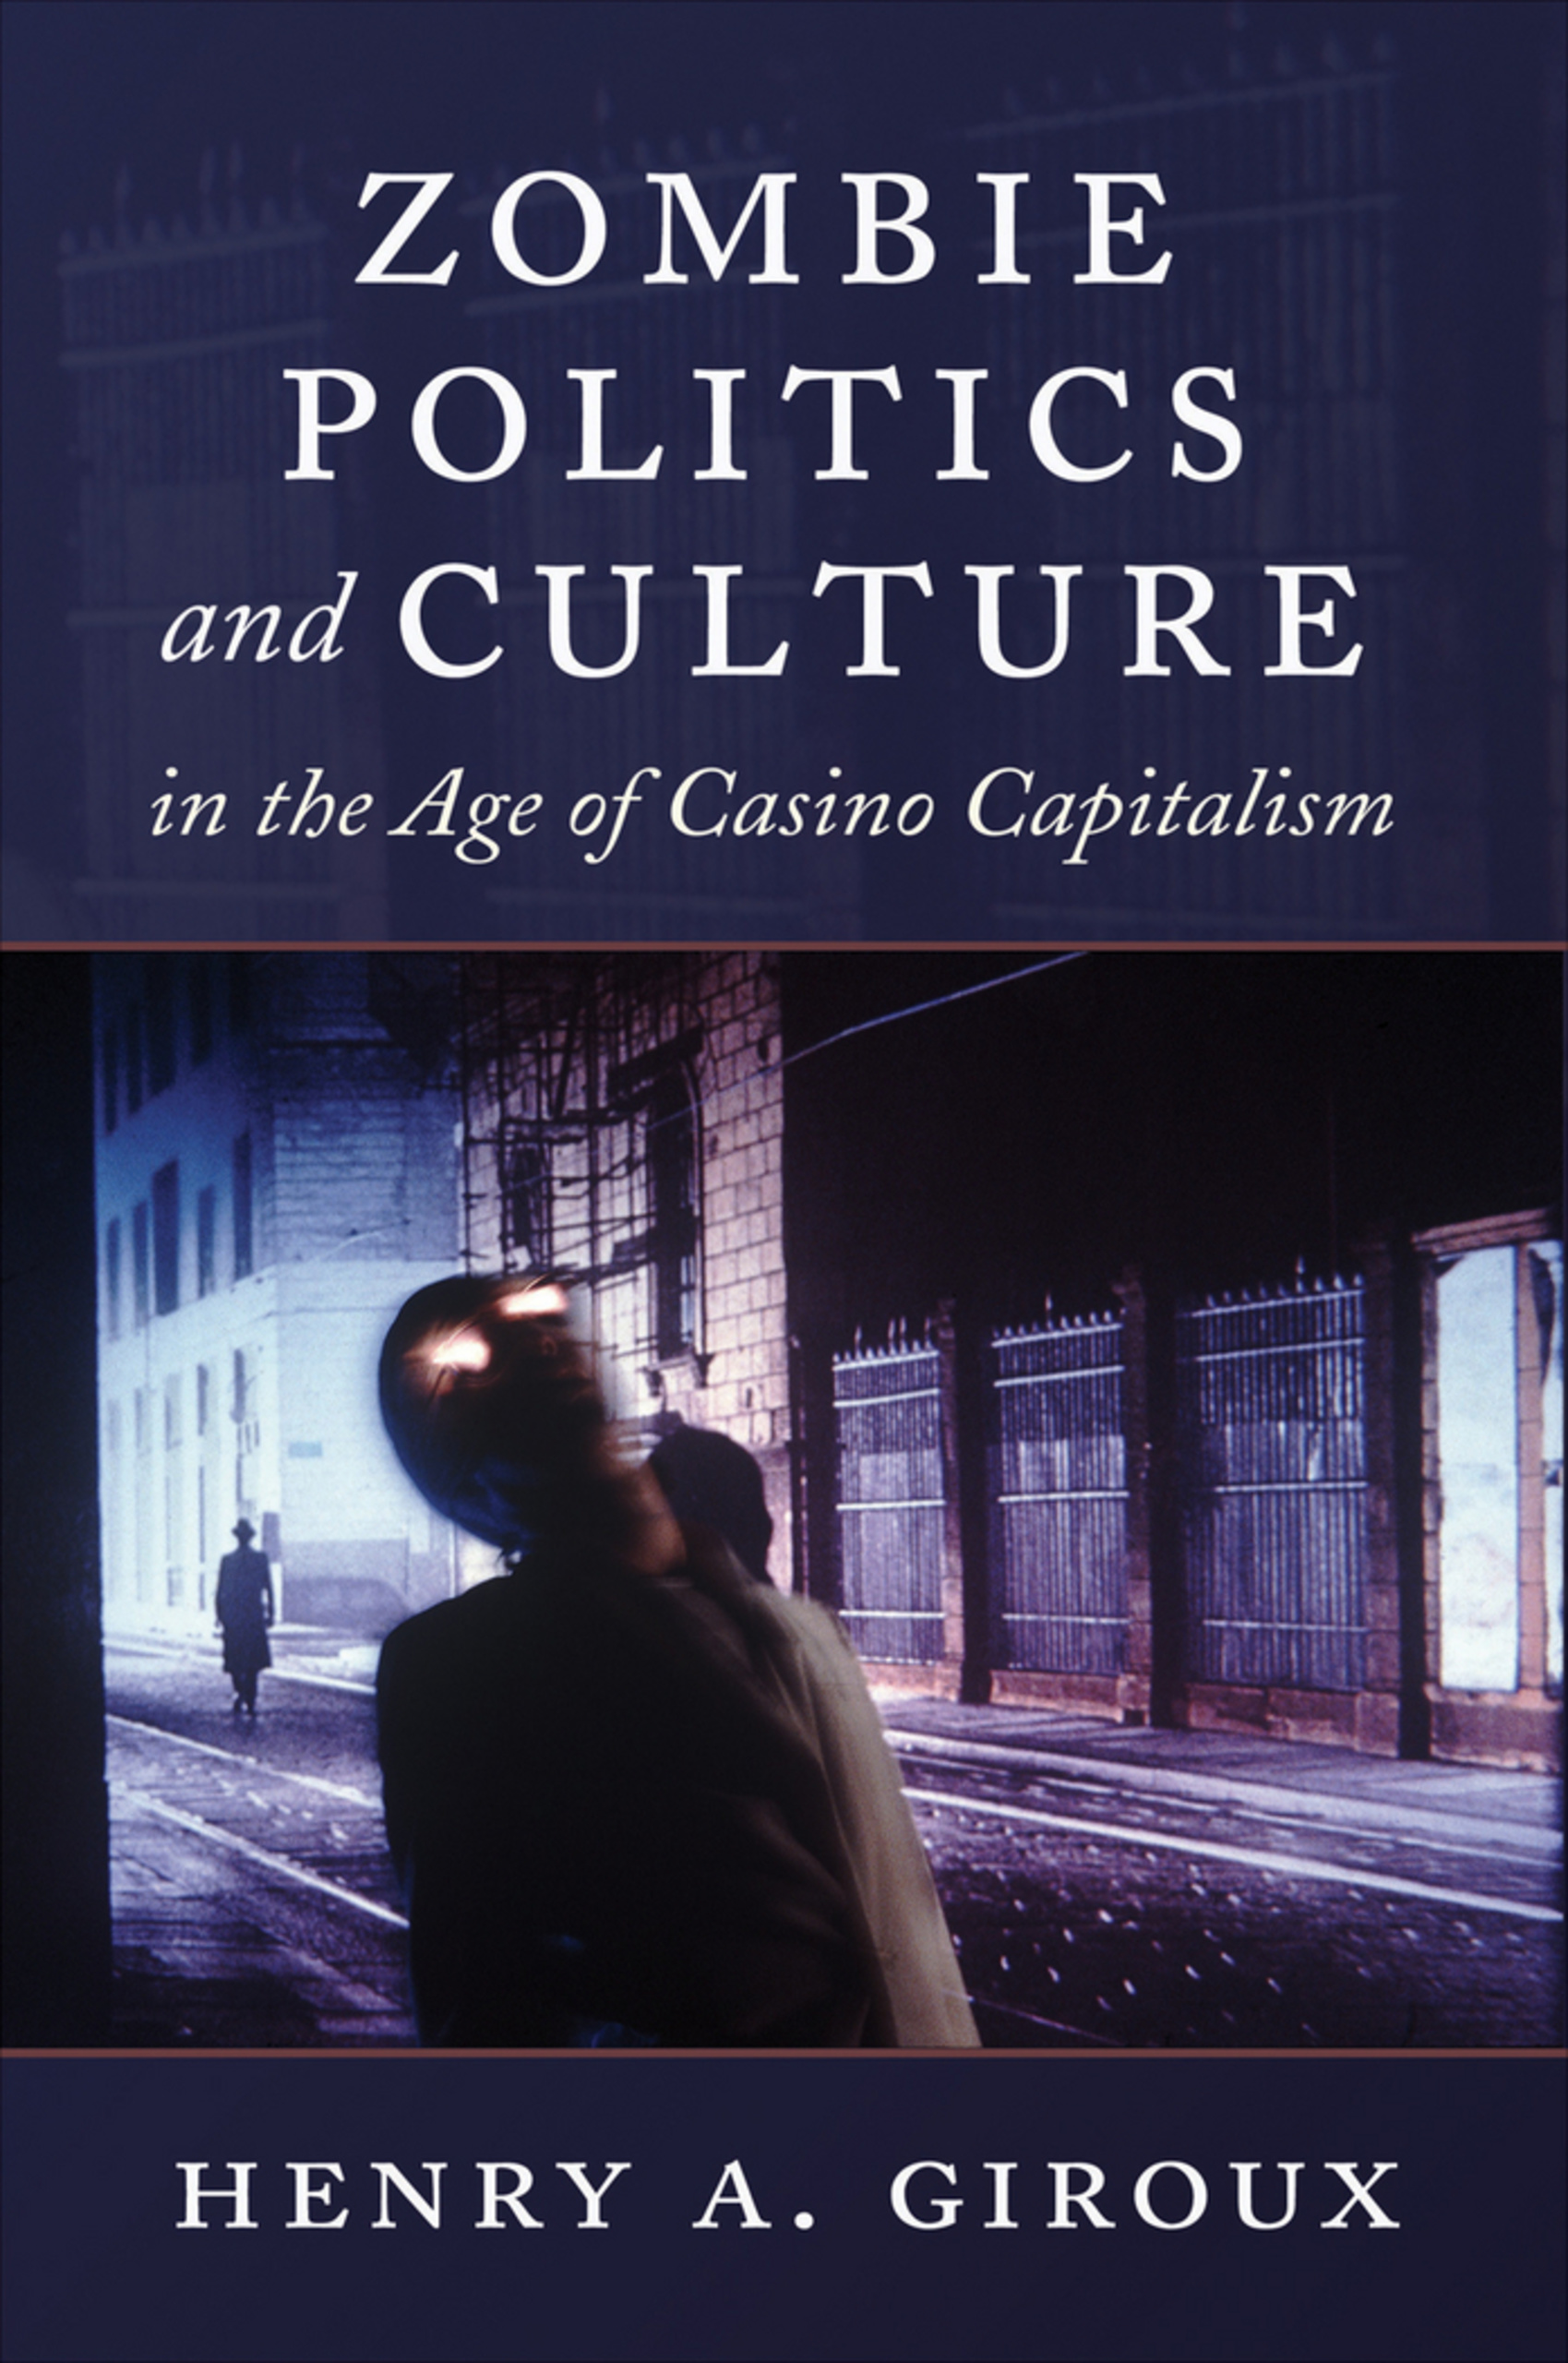 Title: Zombie Politics and Culture in the Age of Casino Capitalism